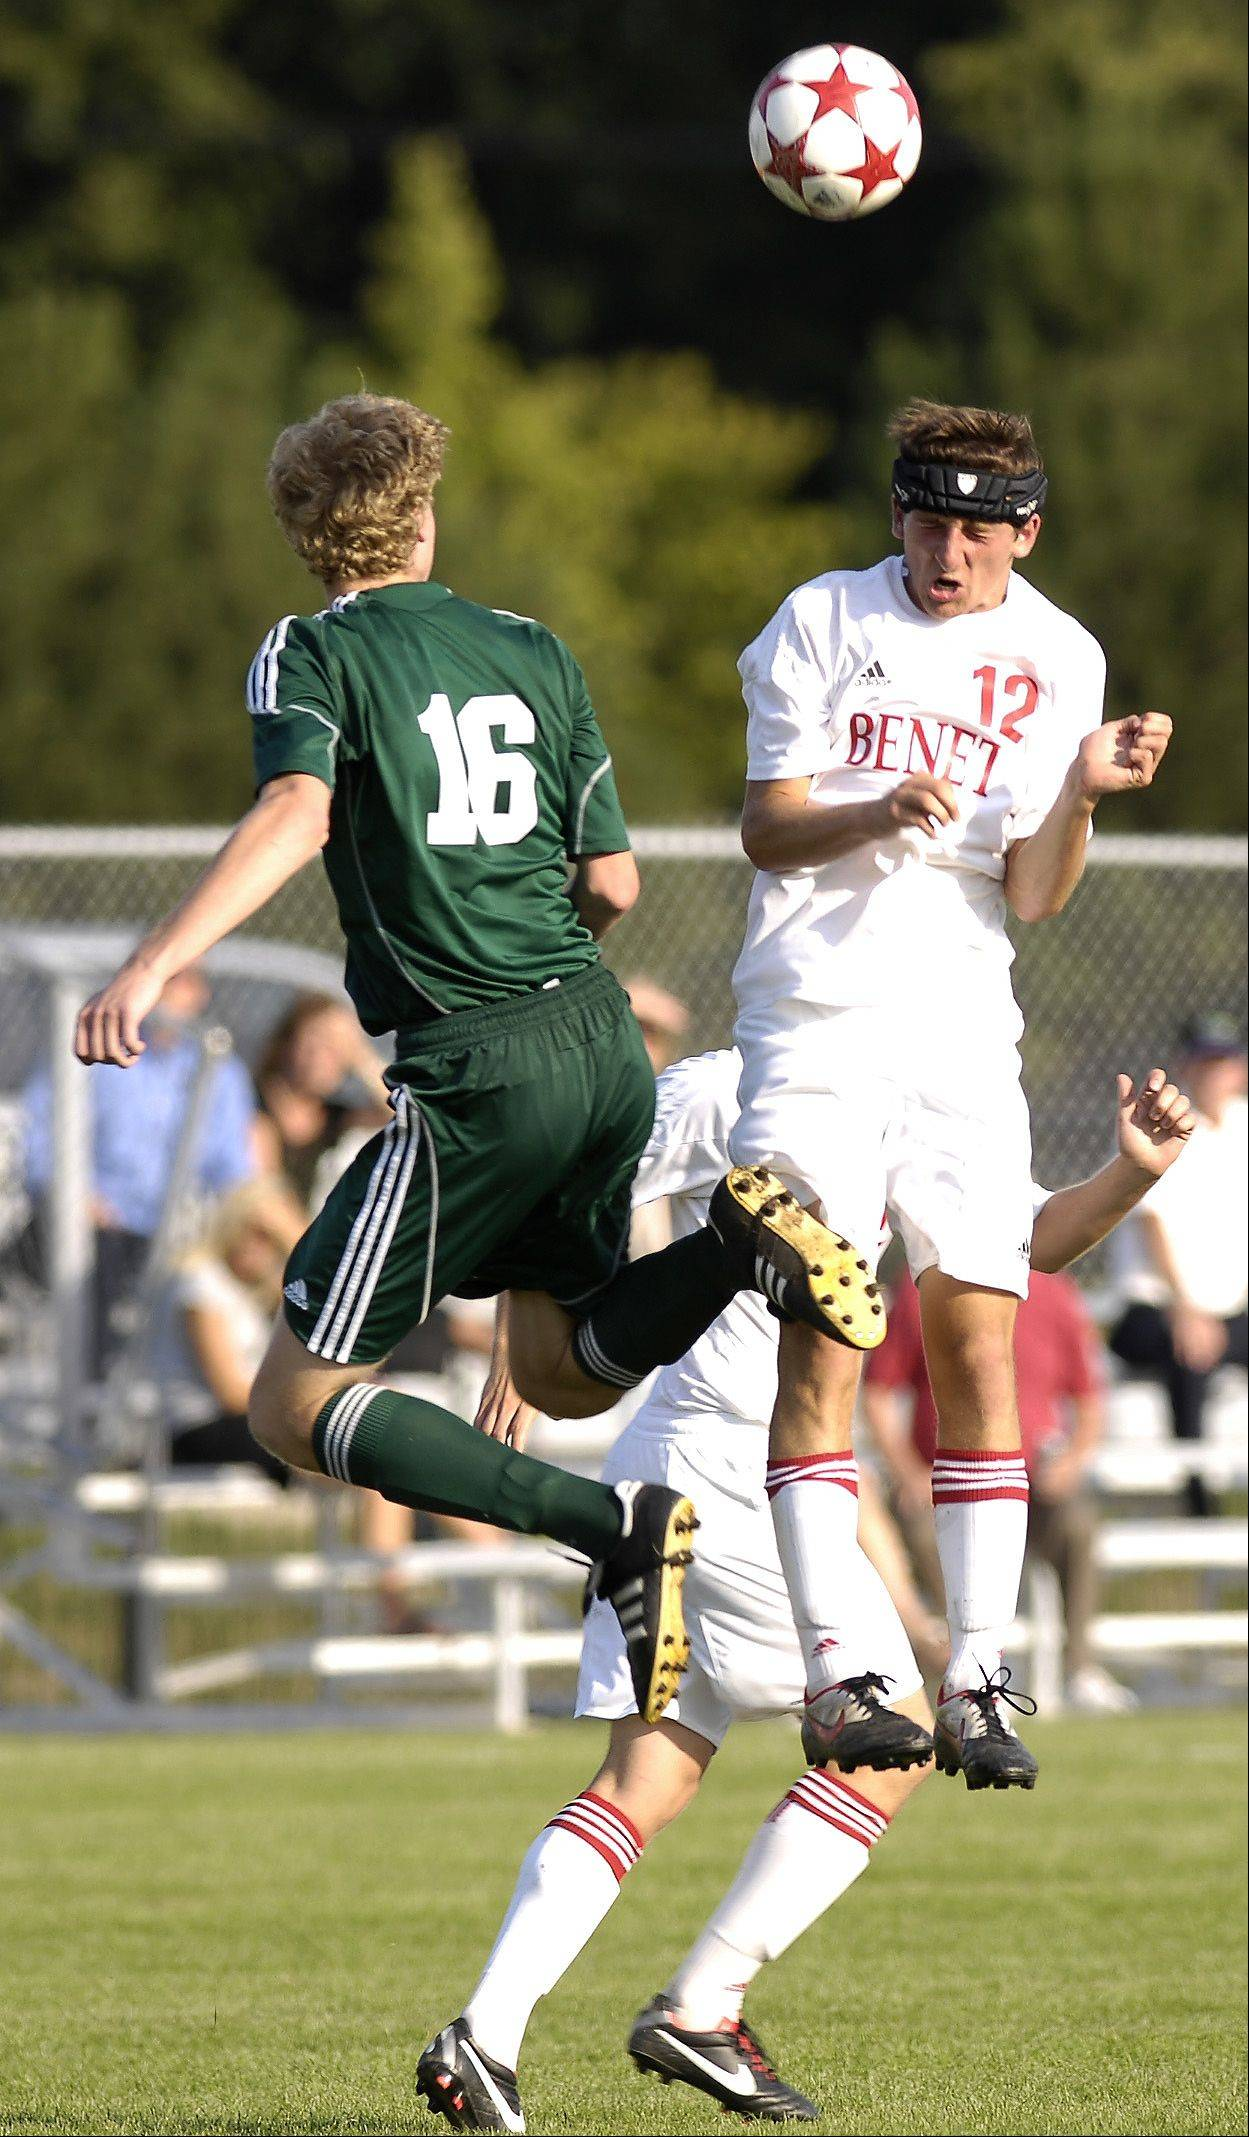 Waubonsie Valley's Jack Cordes and Benet's Kyle Kenagy work for control of the ball during Thursday's boy soccer action in Lisle.